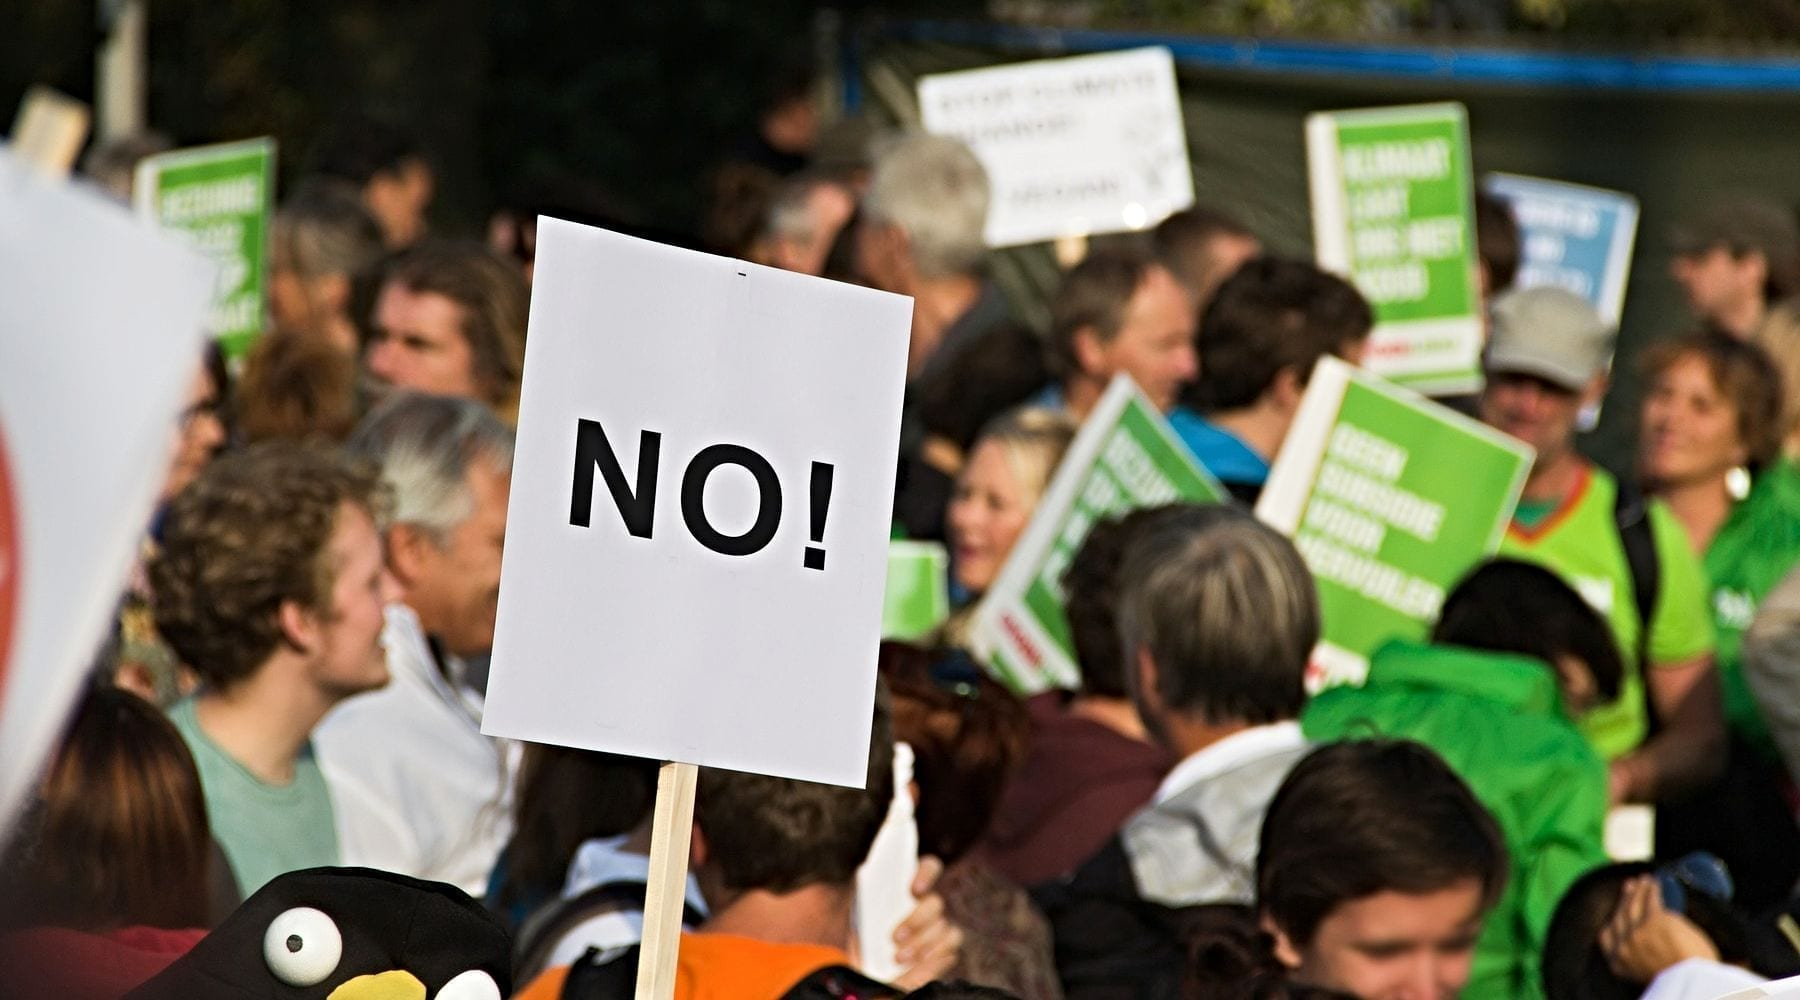 On Most Issues, Majority Says 'No' to Religion Swaying Gov't Policy